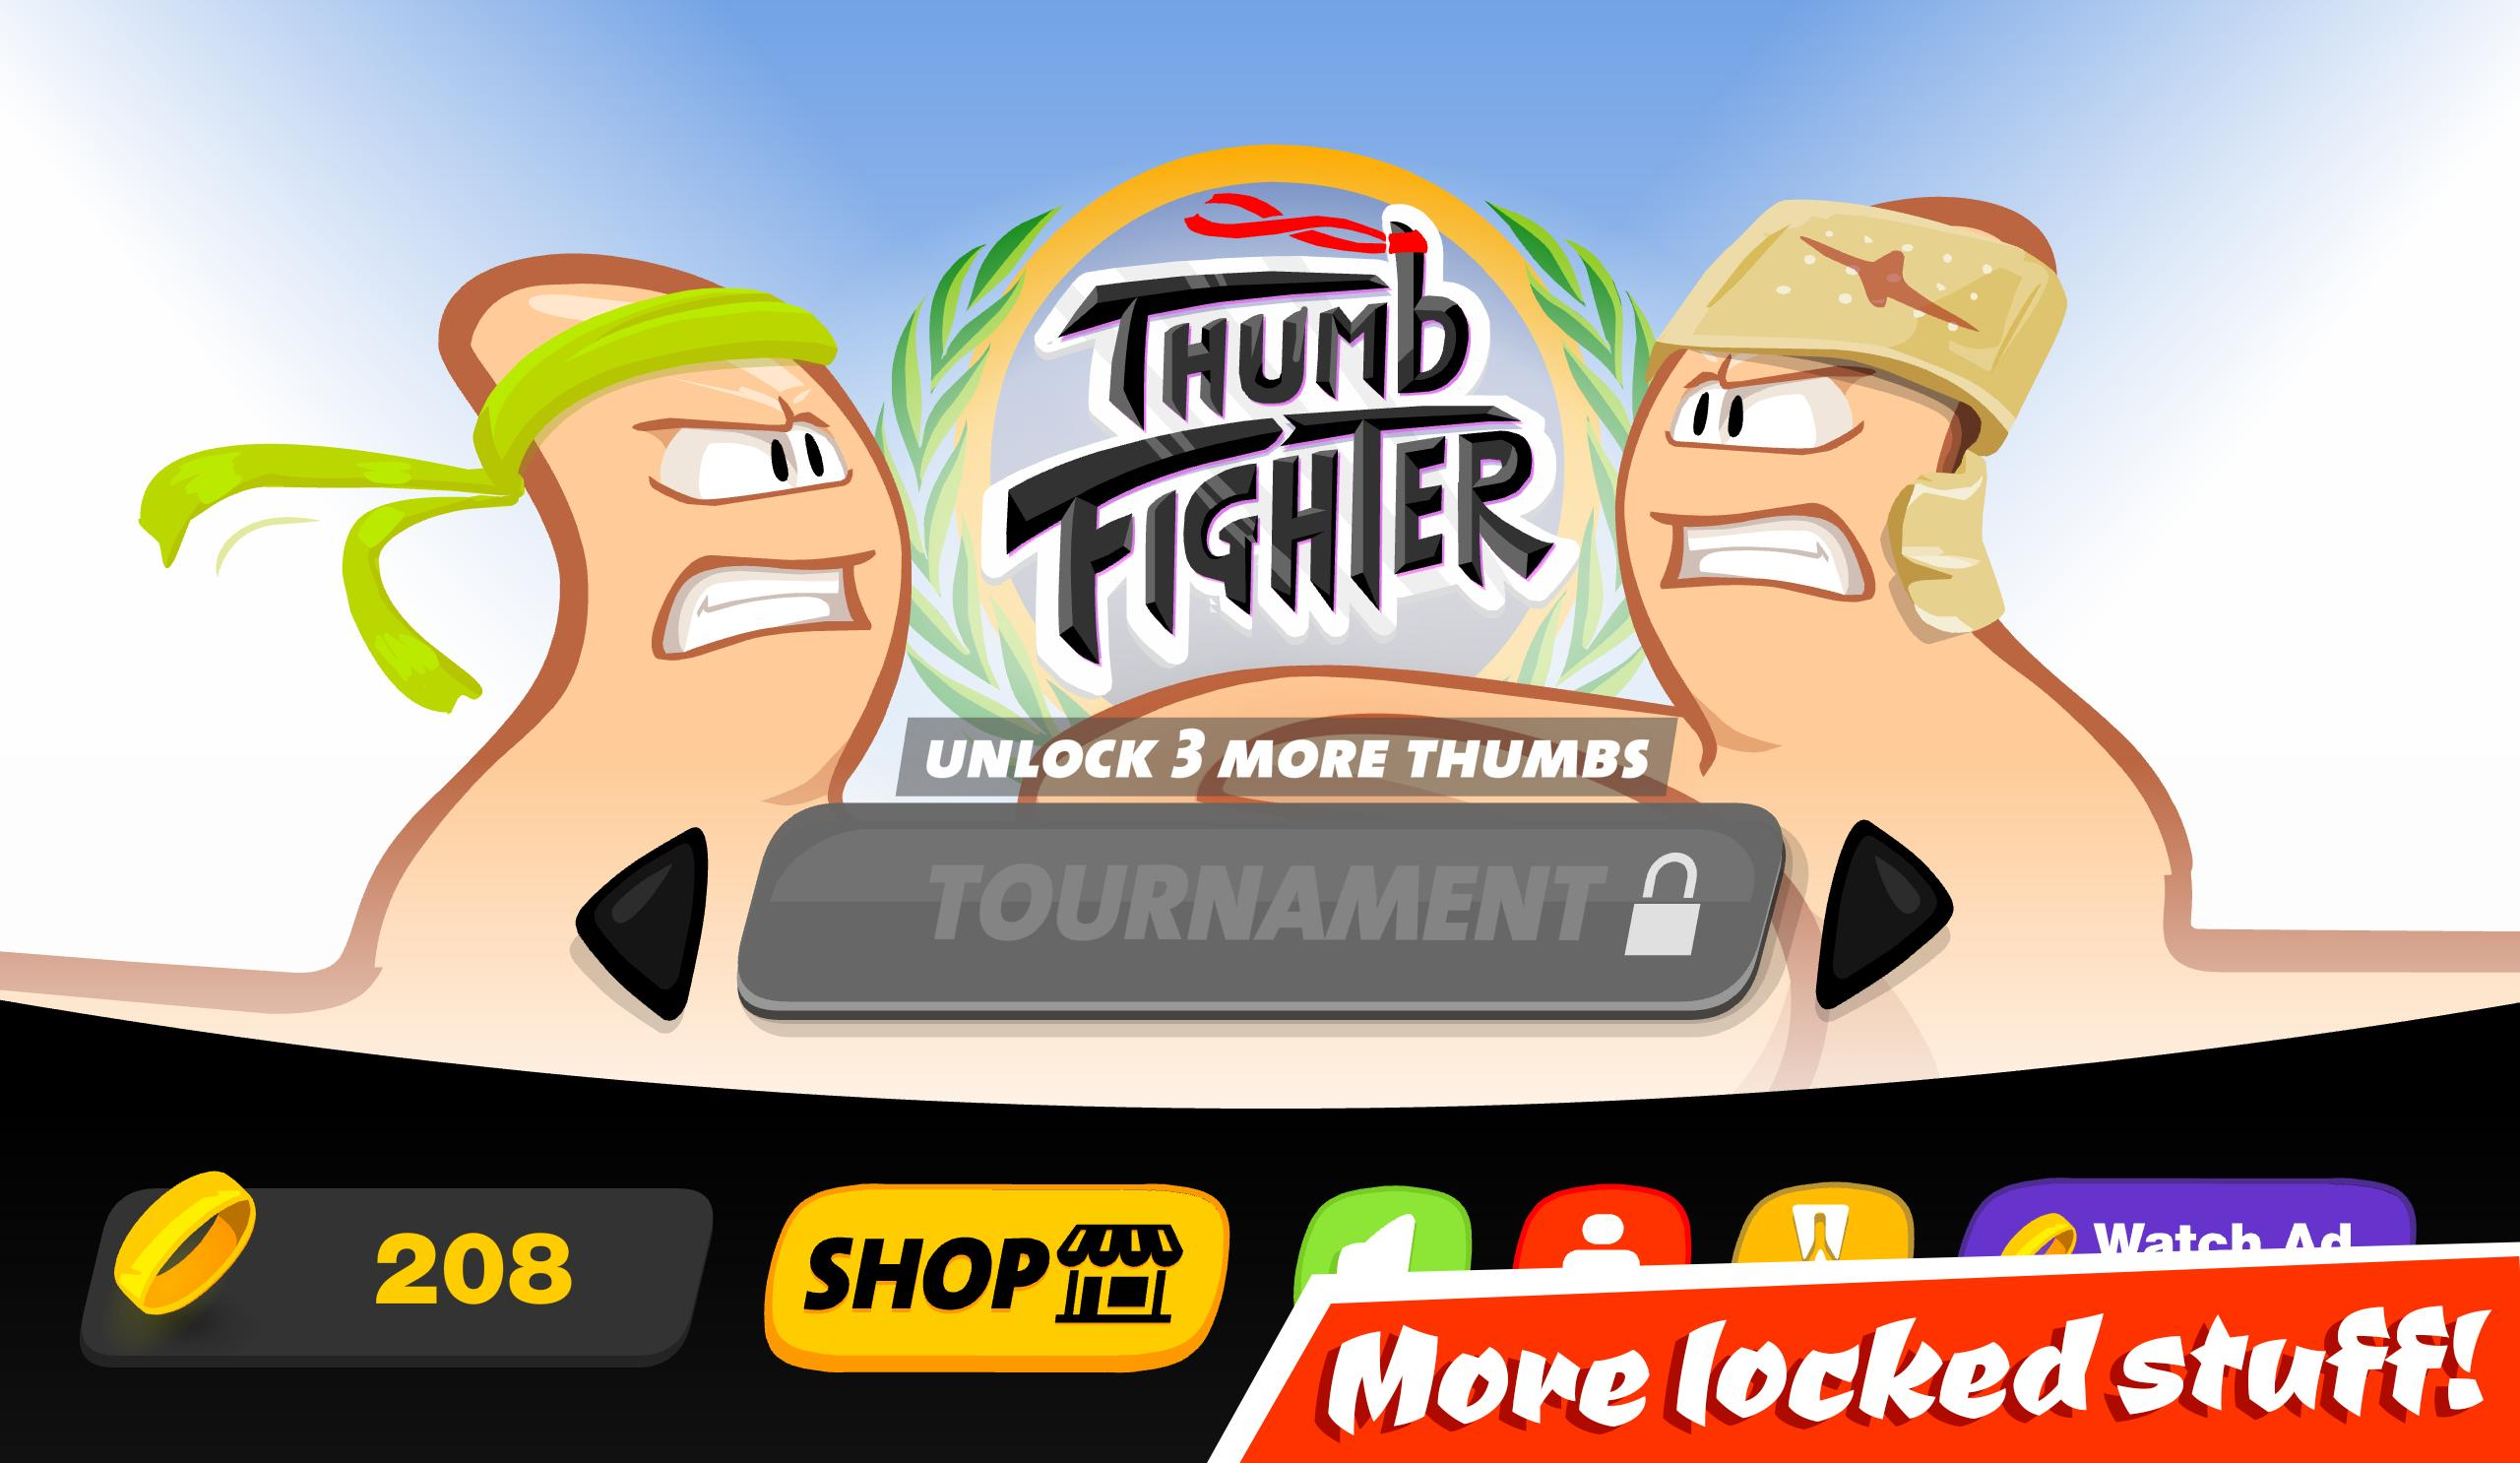 Thumb Fighter 👍 1.4.053 Screenshot 18